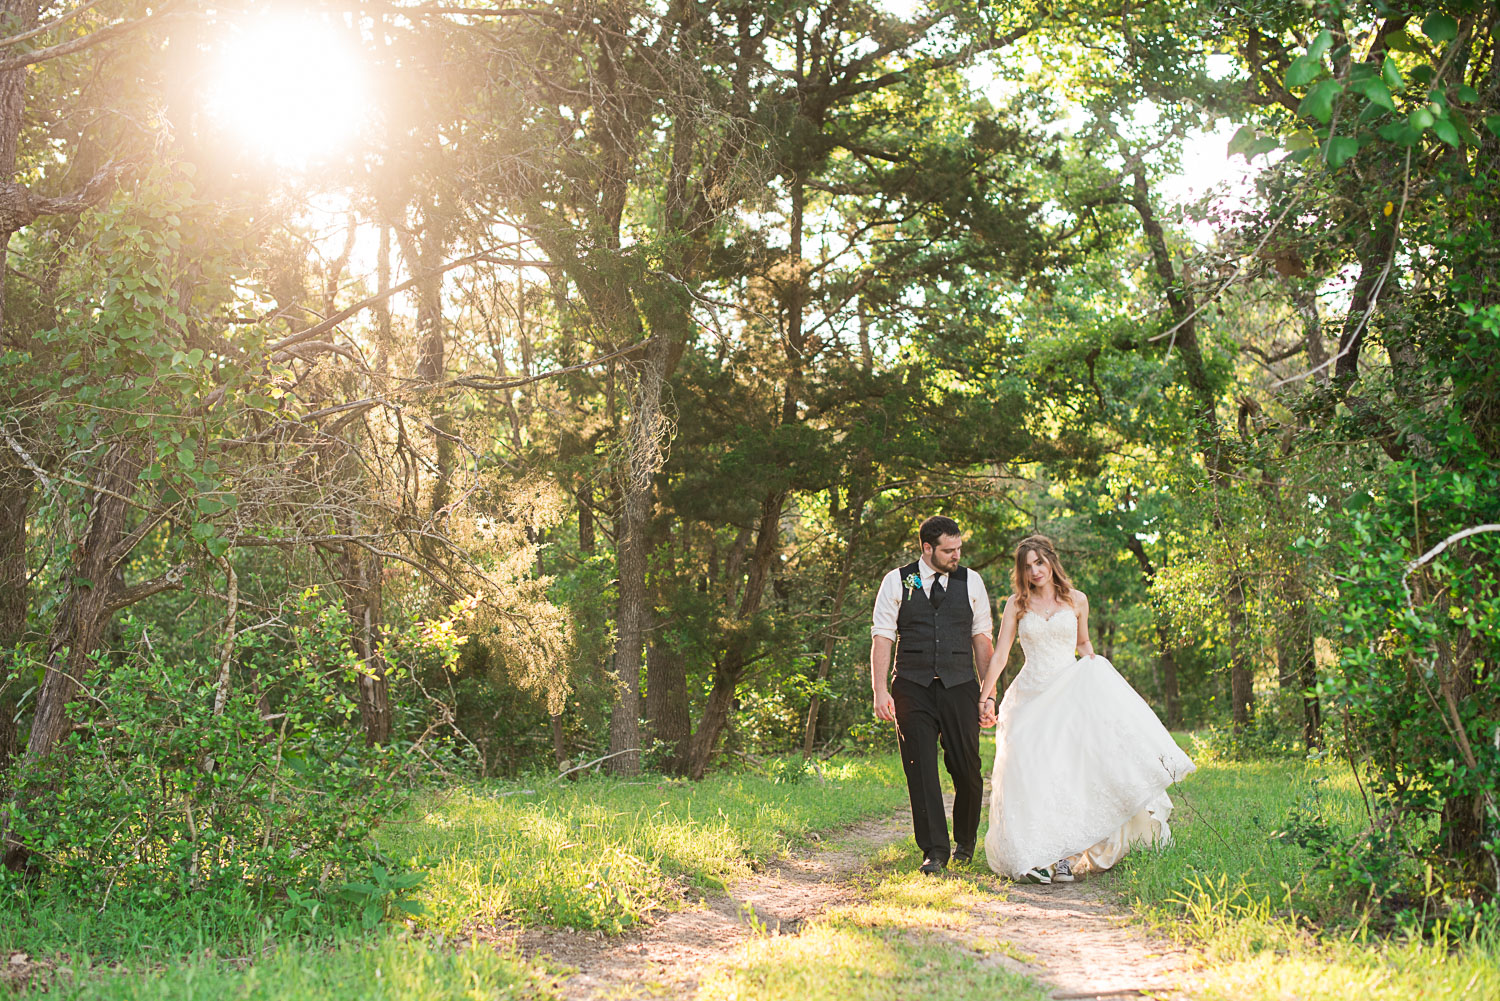 129 bride and groom on country road.jpg